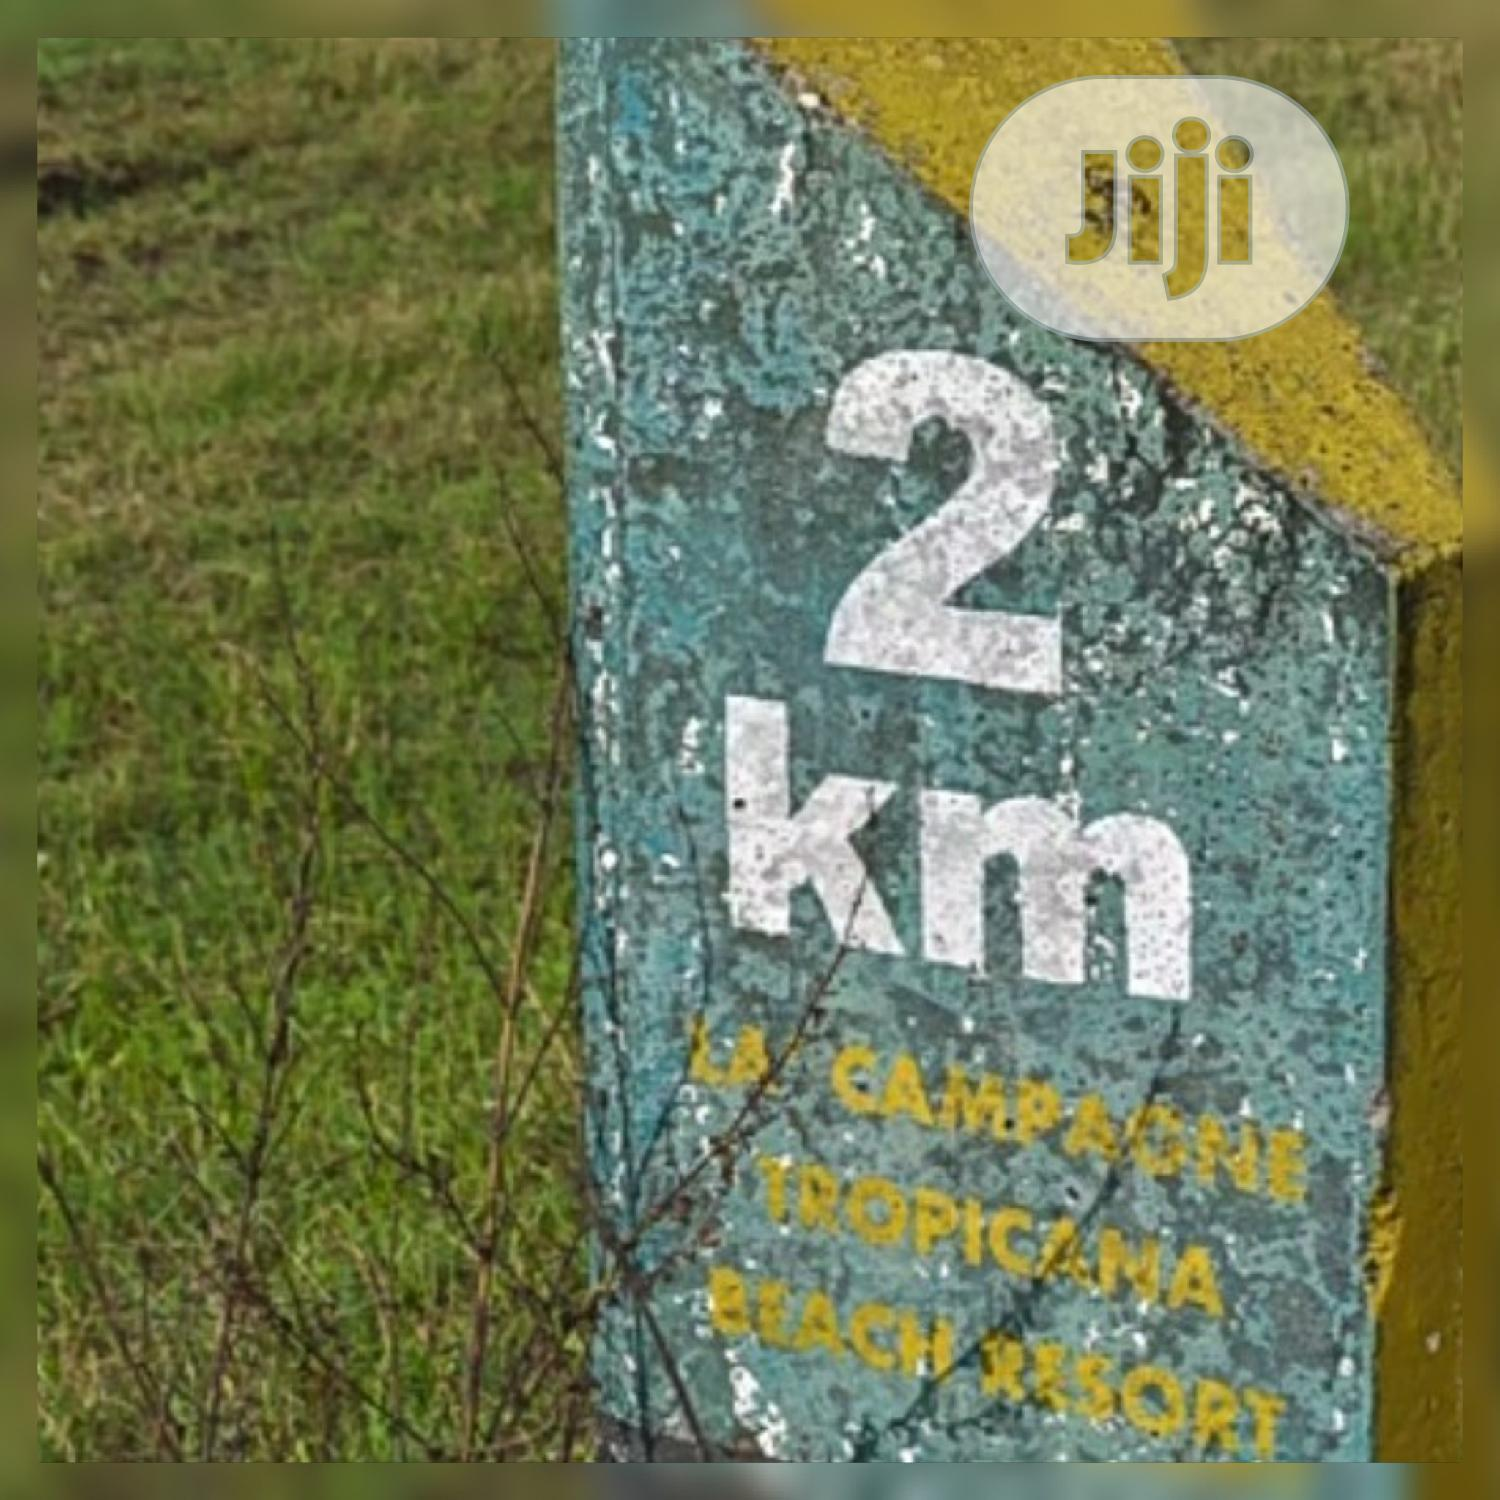 Commercial/ Residential Land By The Express For Sale. Ref43 | Land & Plots For Sale for sale in Akodo, Ibeju, Nigeria